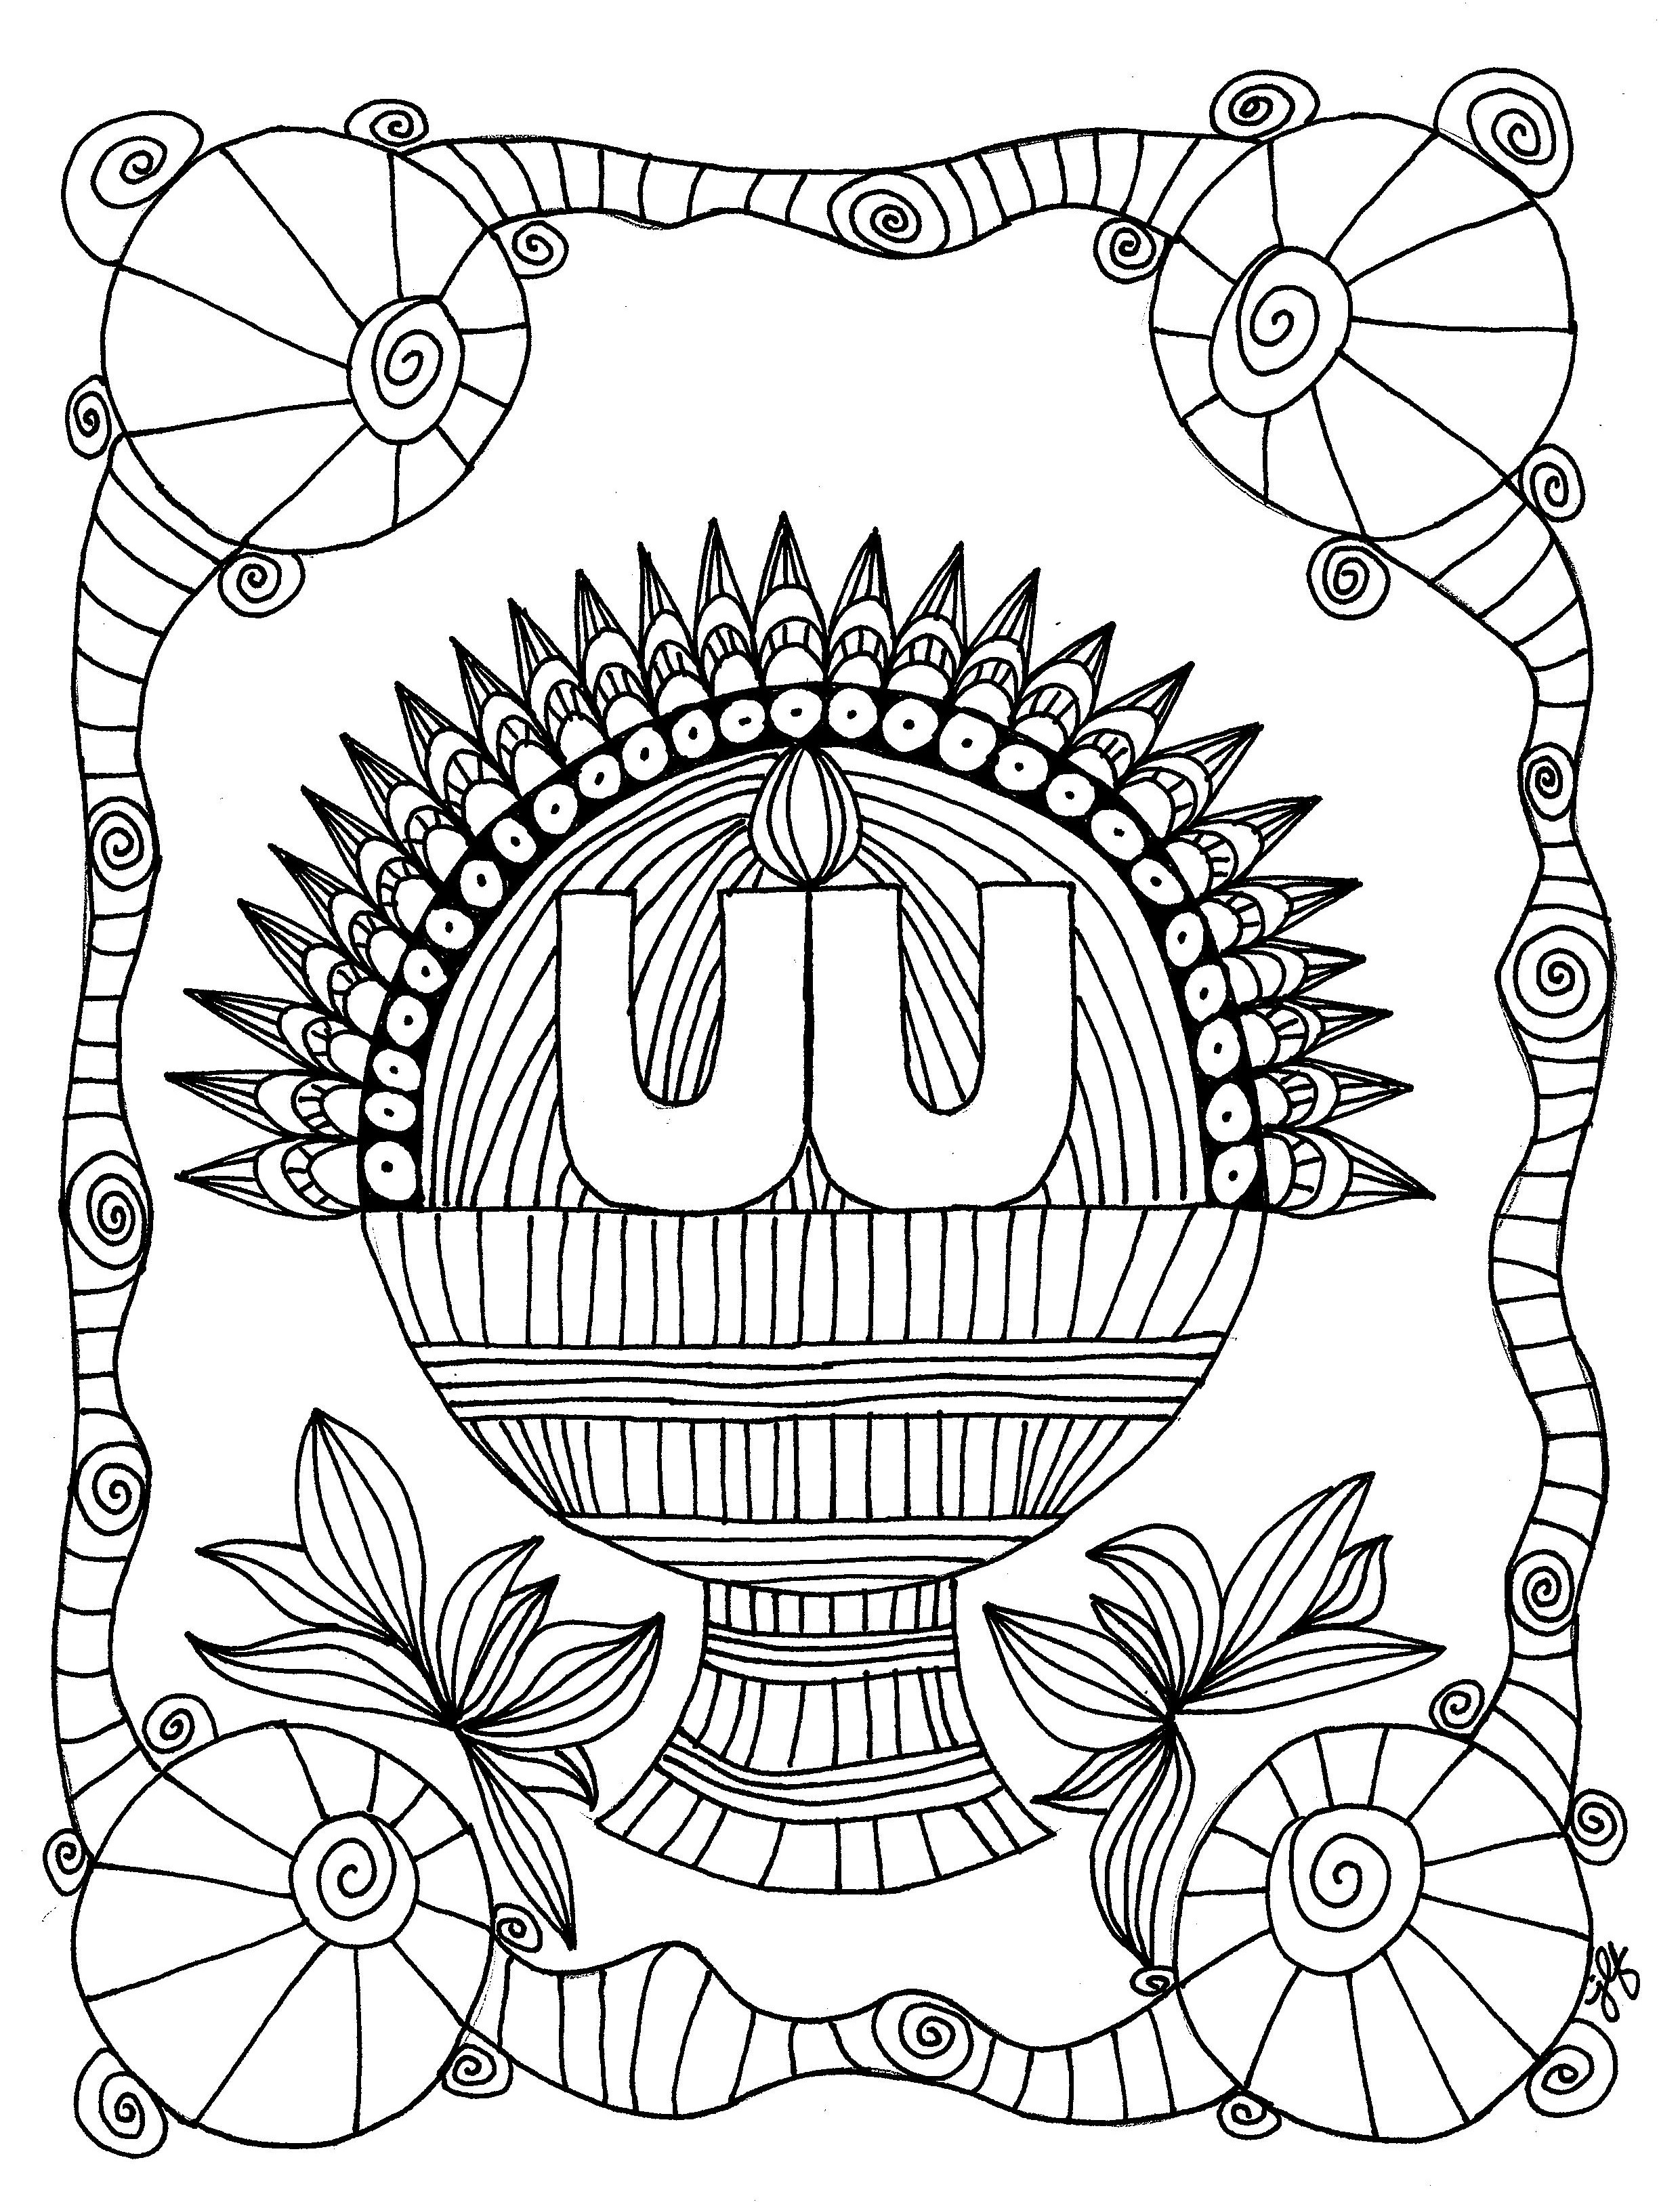 Harvest Basket Chalice Coloring Page Uua Org